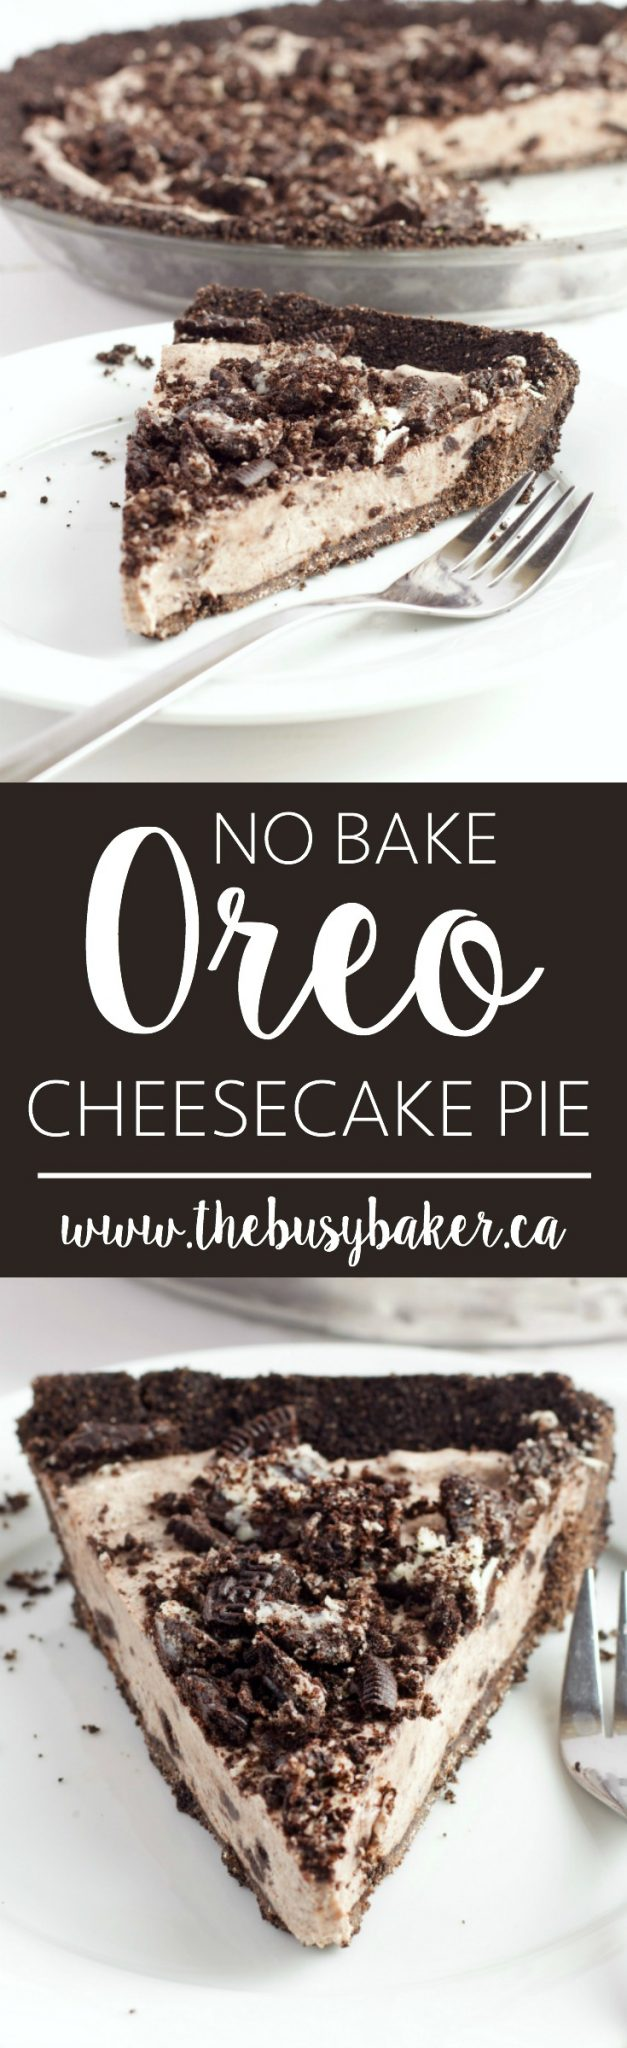 This No Bake Oreo Cheesecake Pie is a super easy to make cool and refreshing summer dessert! The filling is made from only 4 simple ingredients! Recipe from thebusybaker.ca! via @busybakerblog